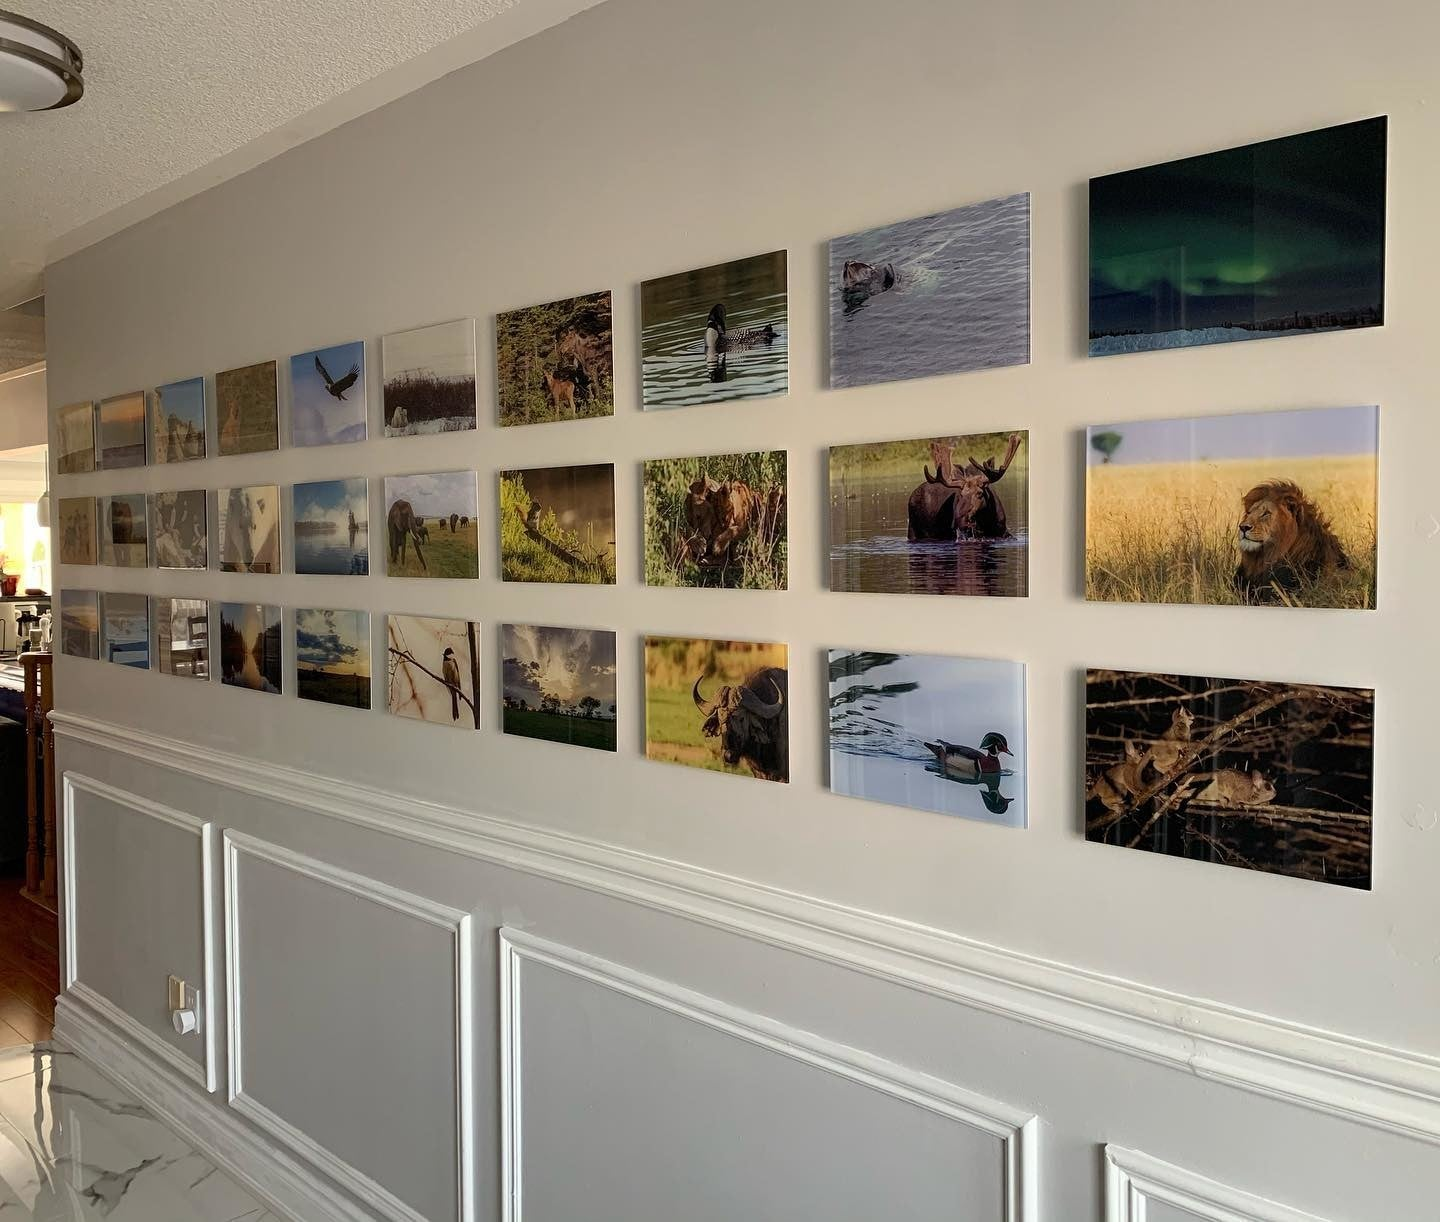 Gallery Wall of Acrylic Prints - Photo by Posterjack Canada Customer